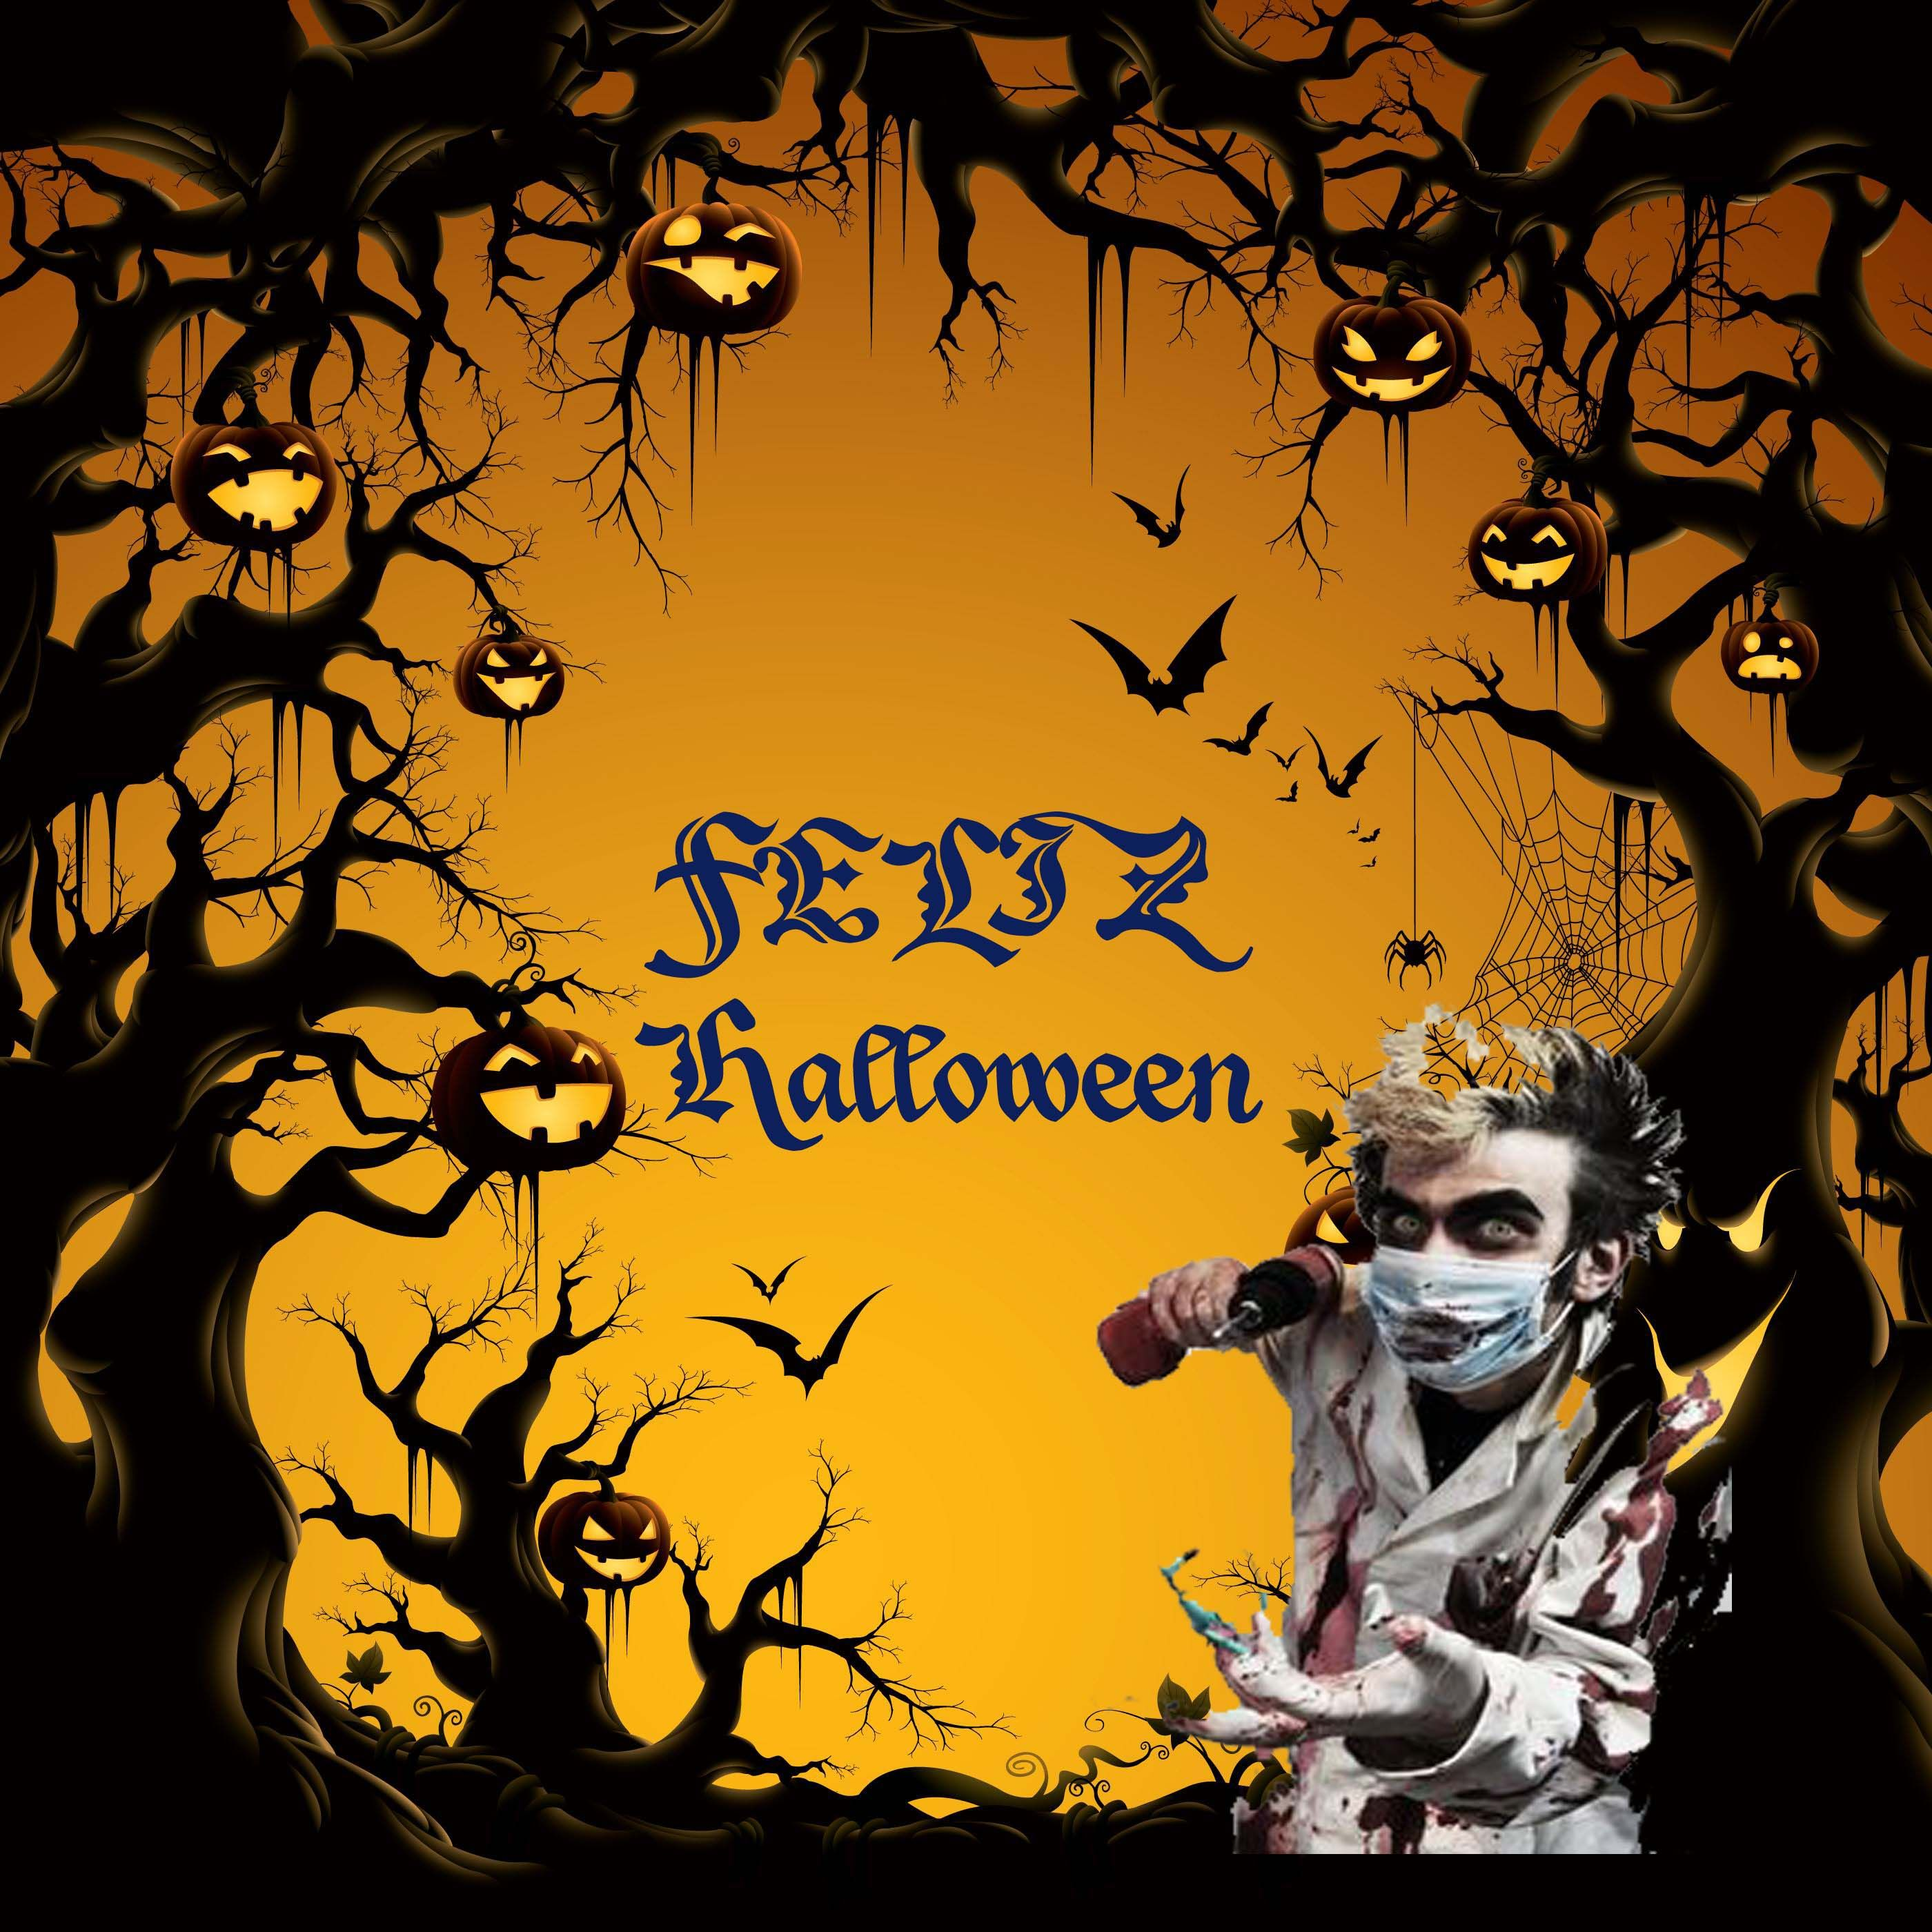 Feliz Halloween 2014 te desea Tot Dental